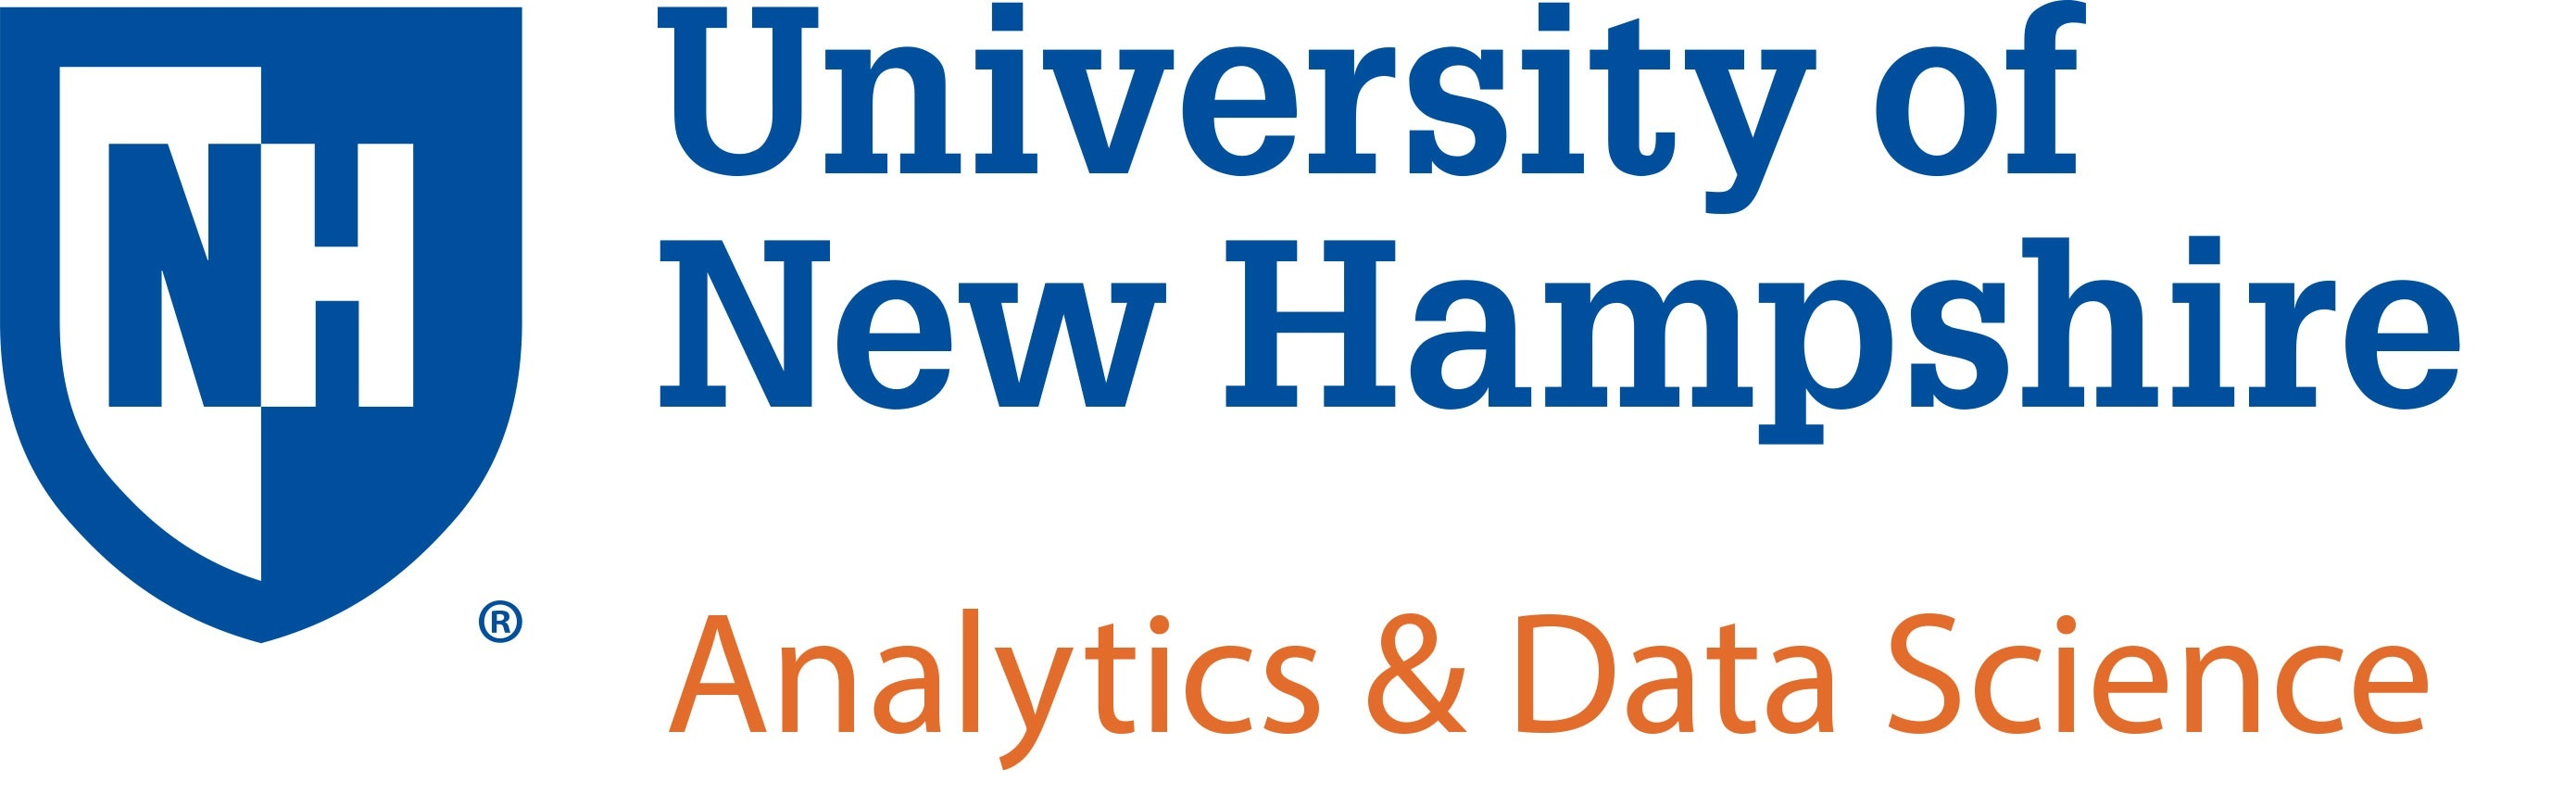 University of New Hampshire Logo - Official